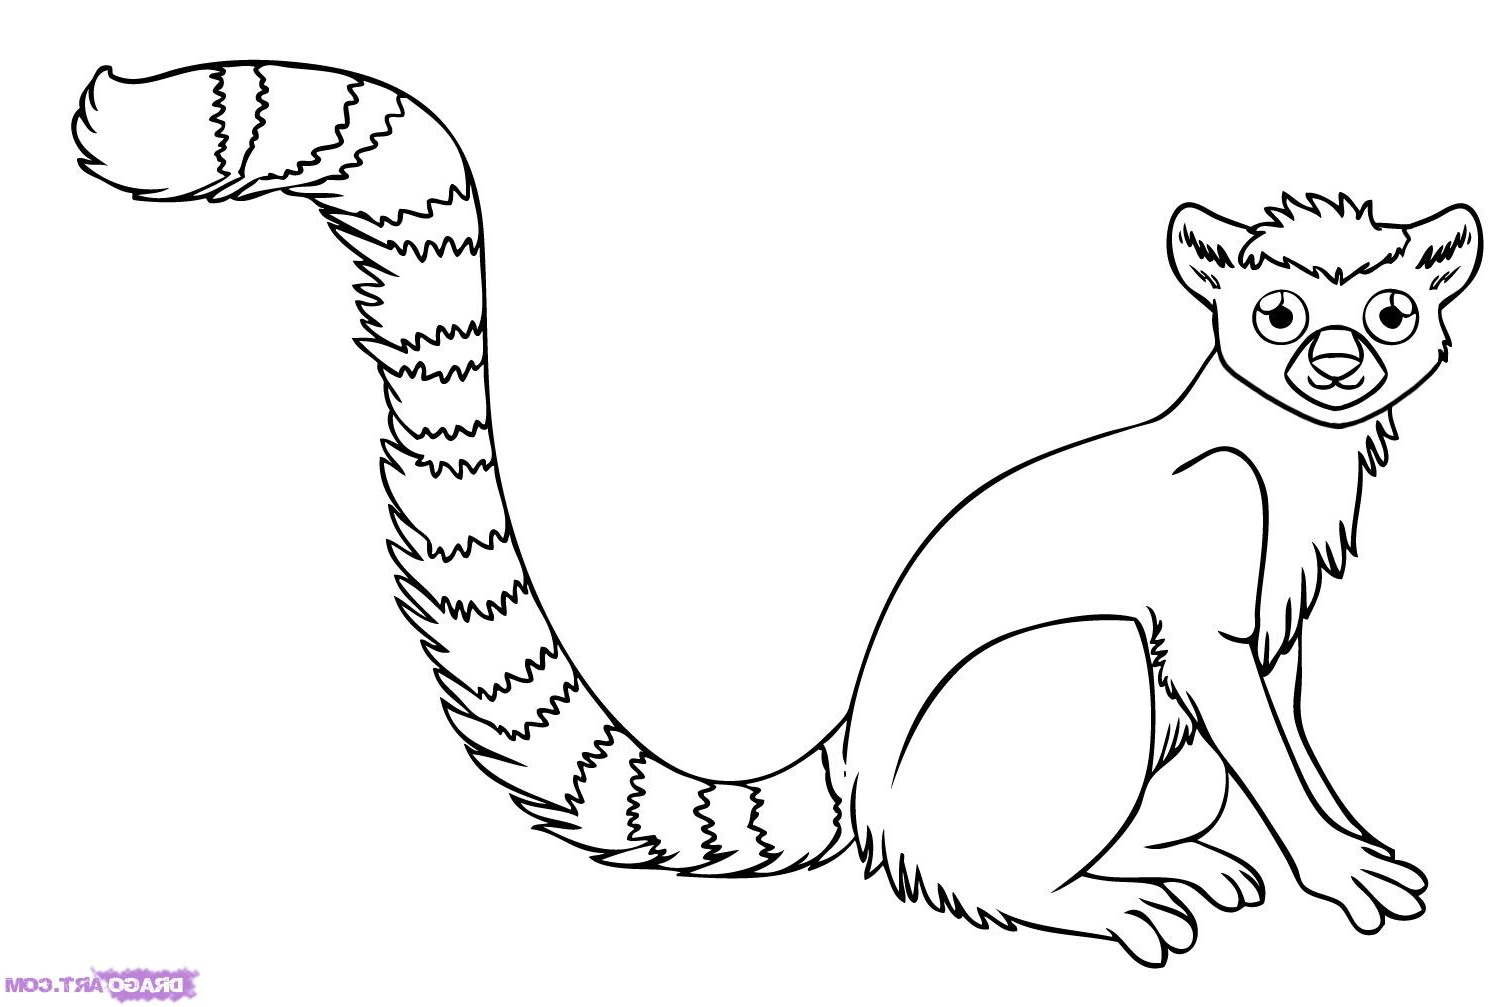 Rainforest Animal Drawing at GetDrawings.com | Free for ...